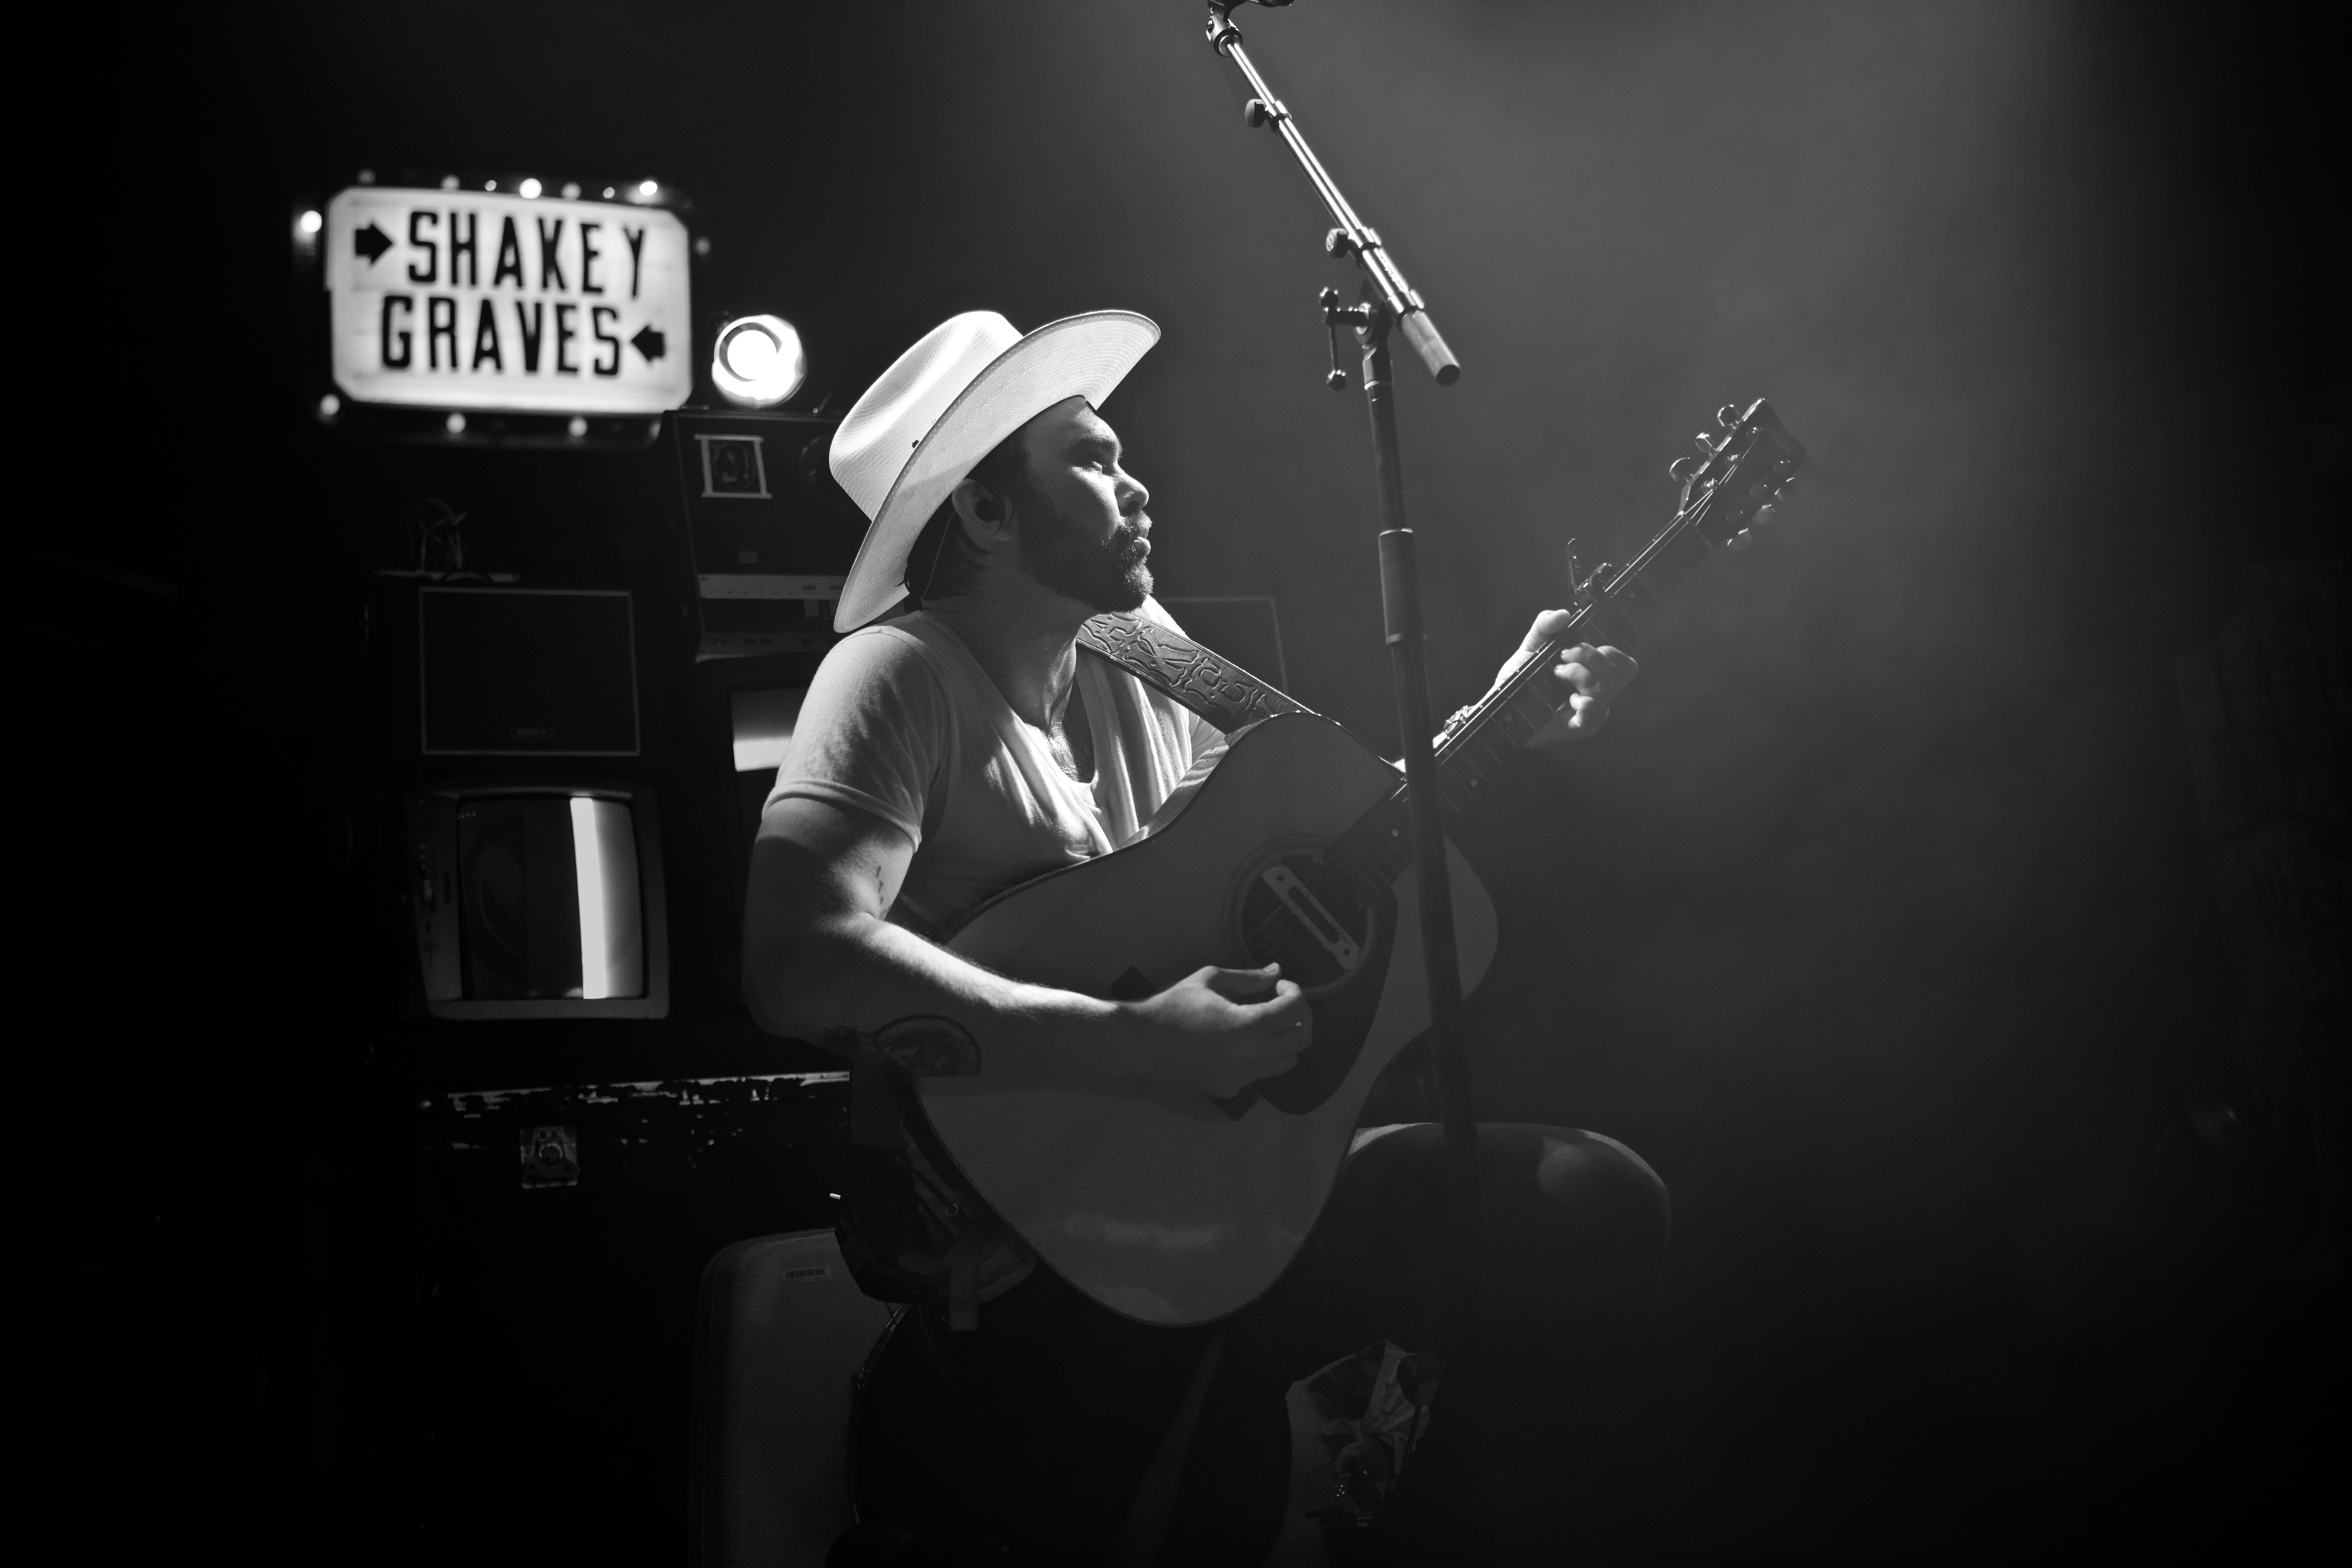 Shakey Graves4- Brooklyn, NY May 2018